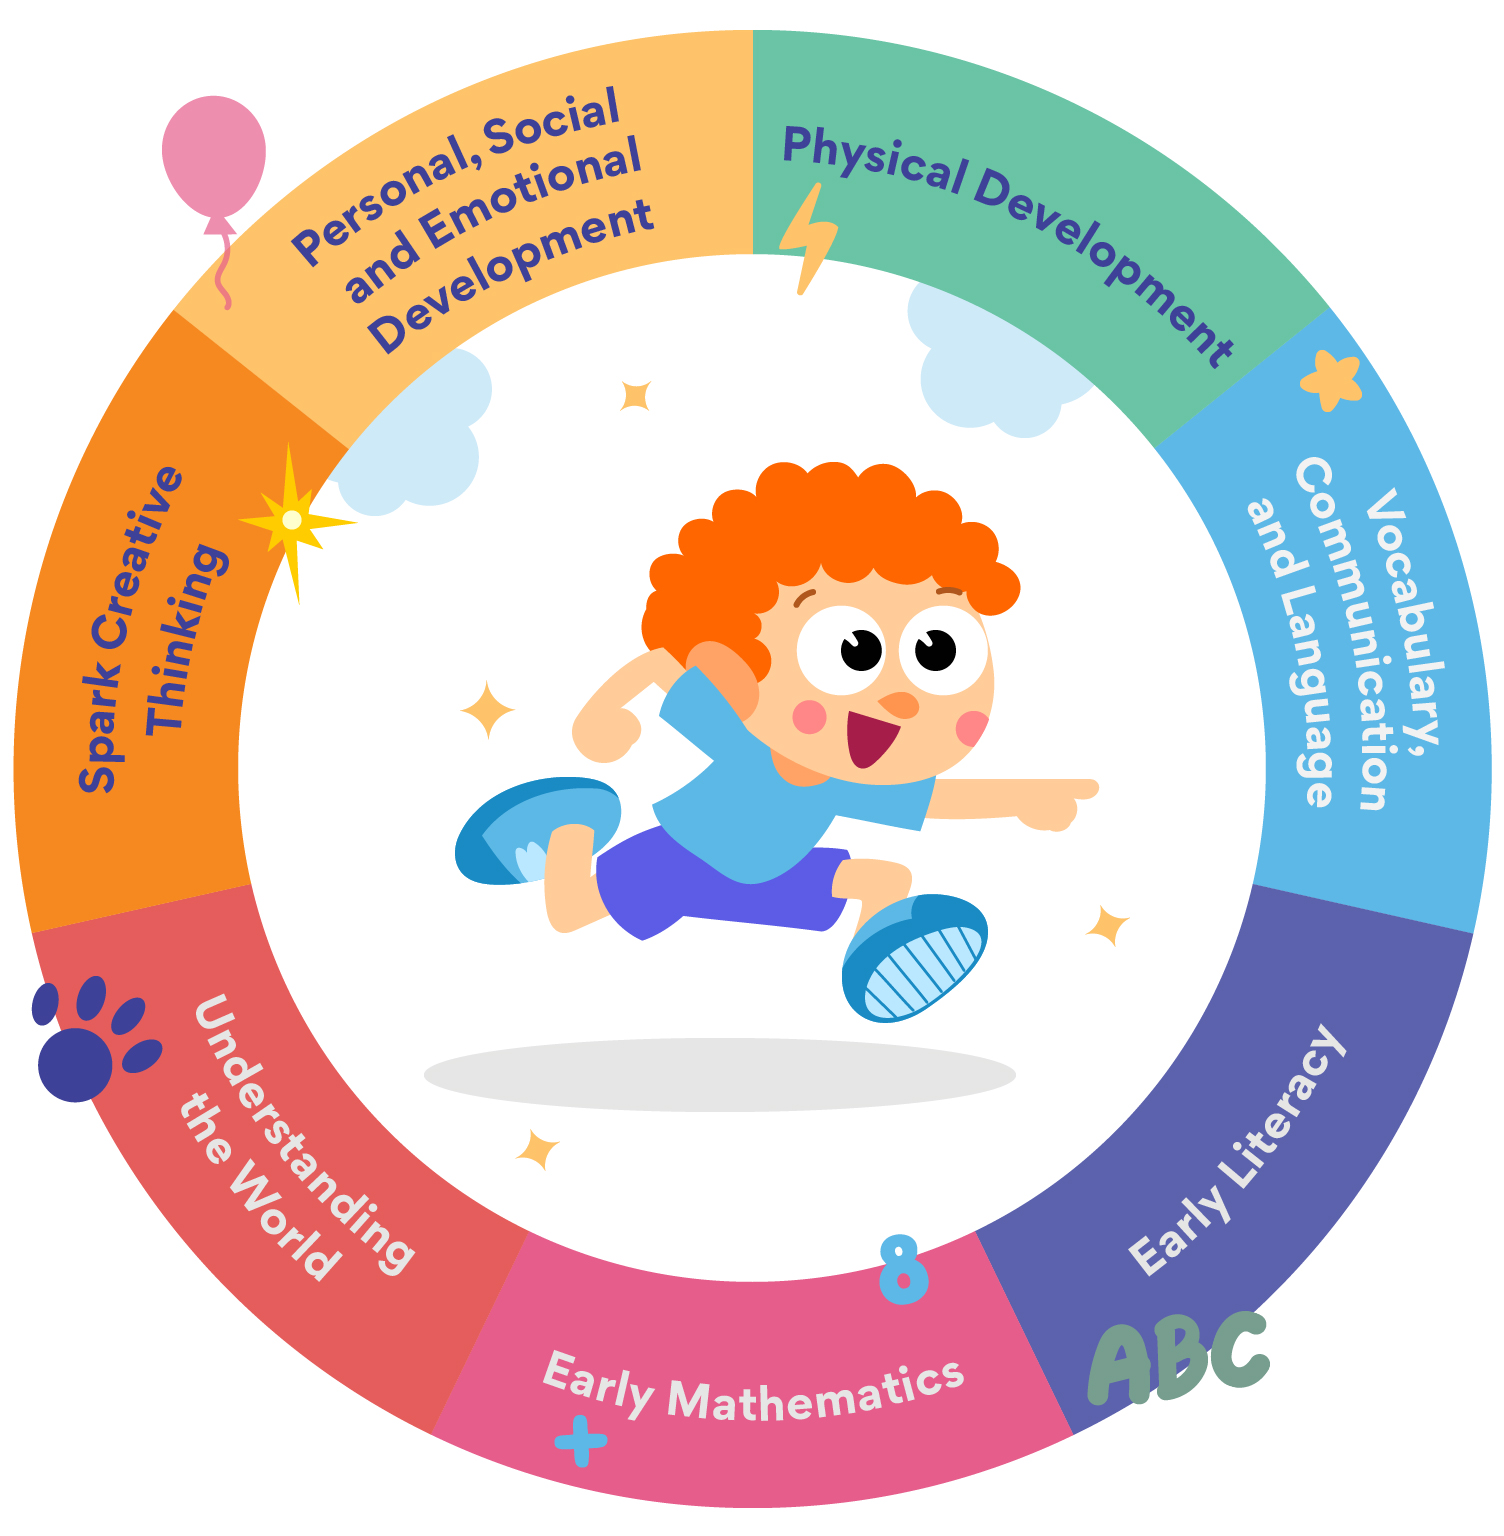 7 benefits of play for children